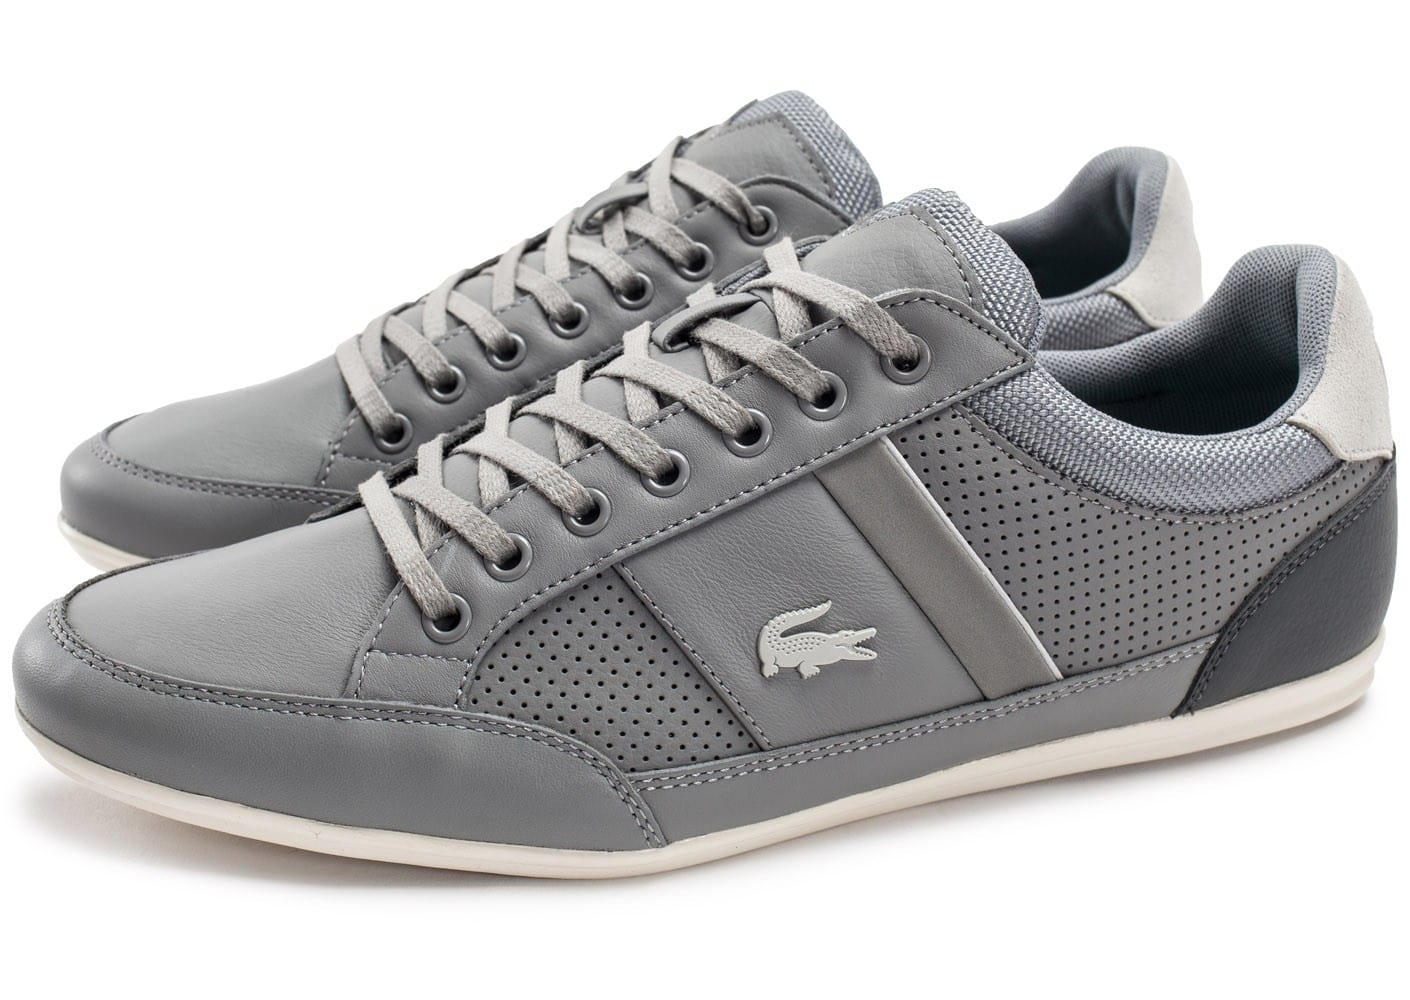 Chausport Grise Homme Chaussures Qpc8wsw Chaymon Baskets Lacoste rEtqWrgwz